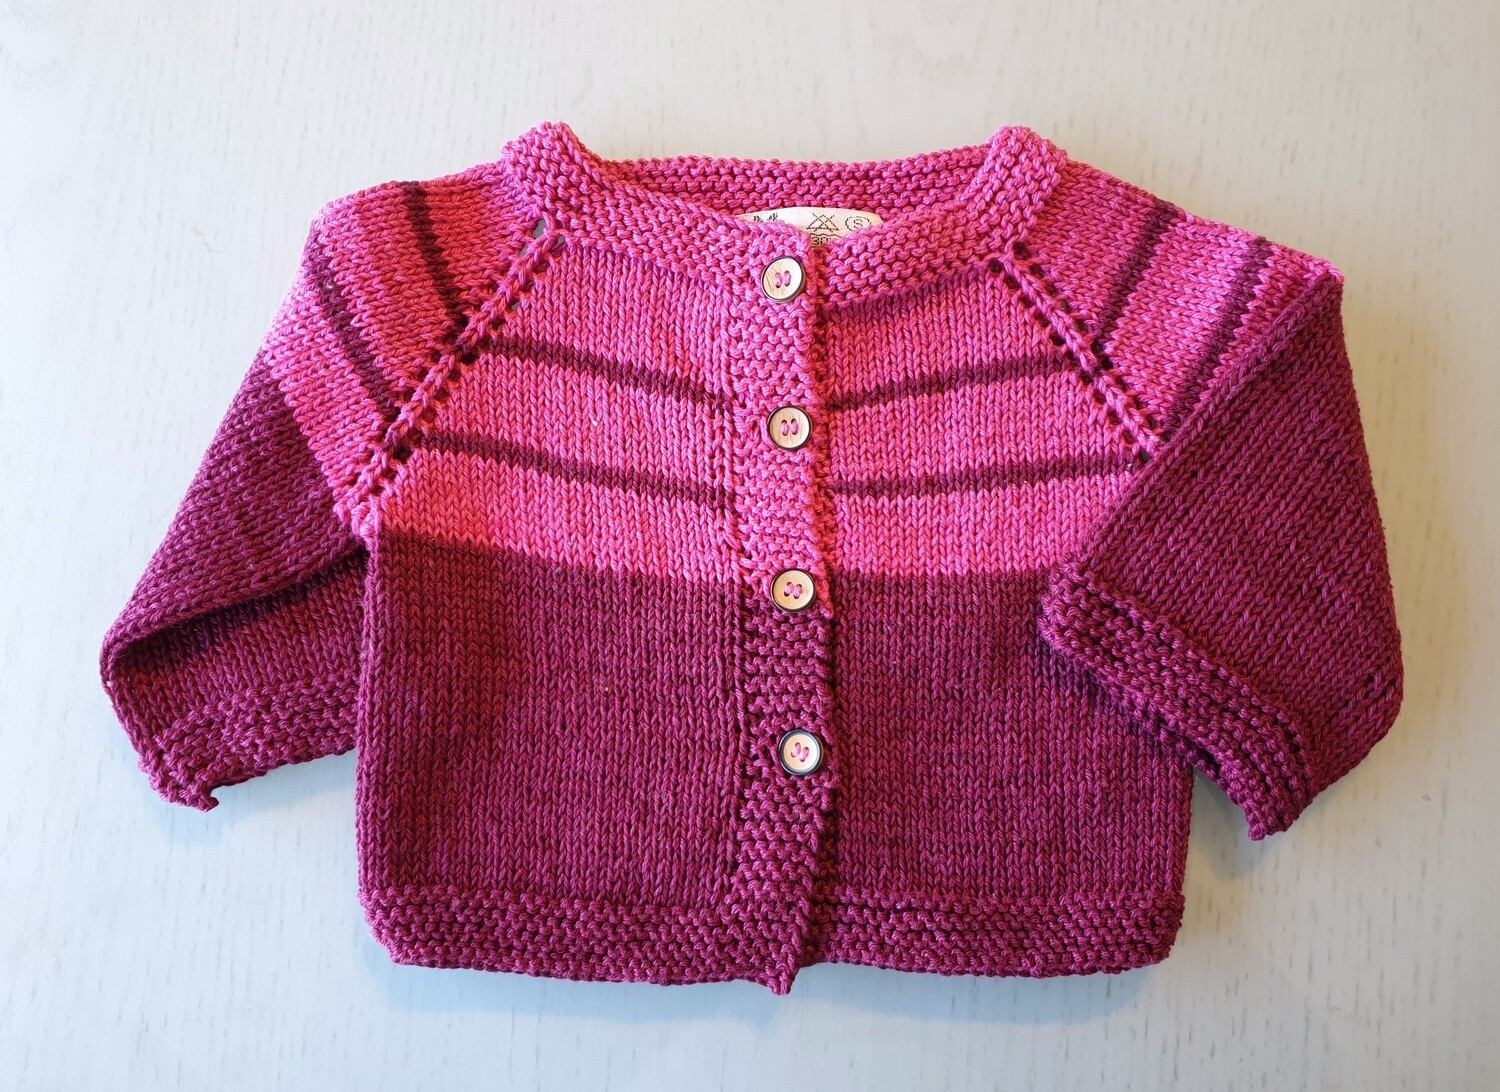 Fuchsia & Burgundy Striped Jacket (Medium)